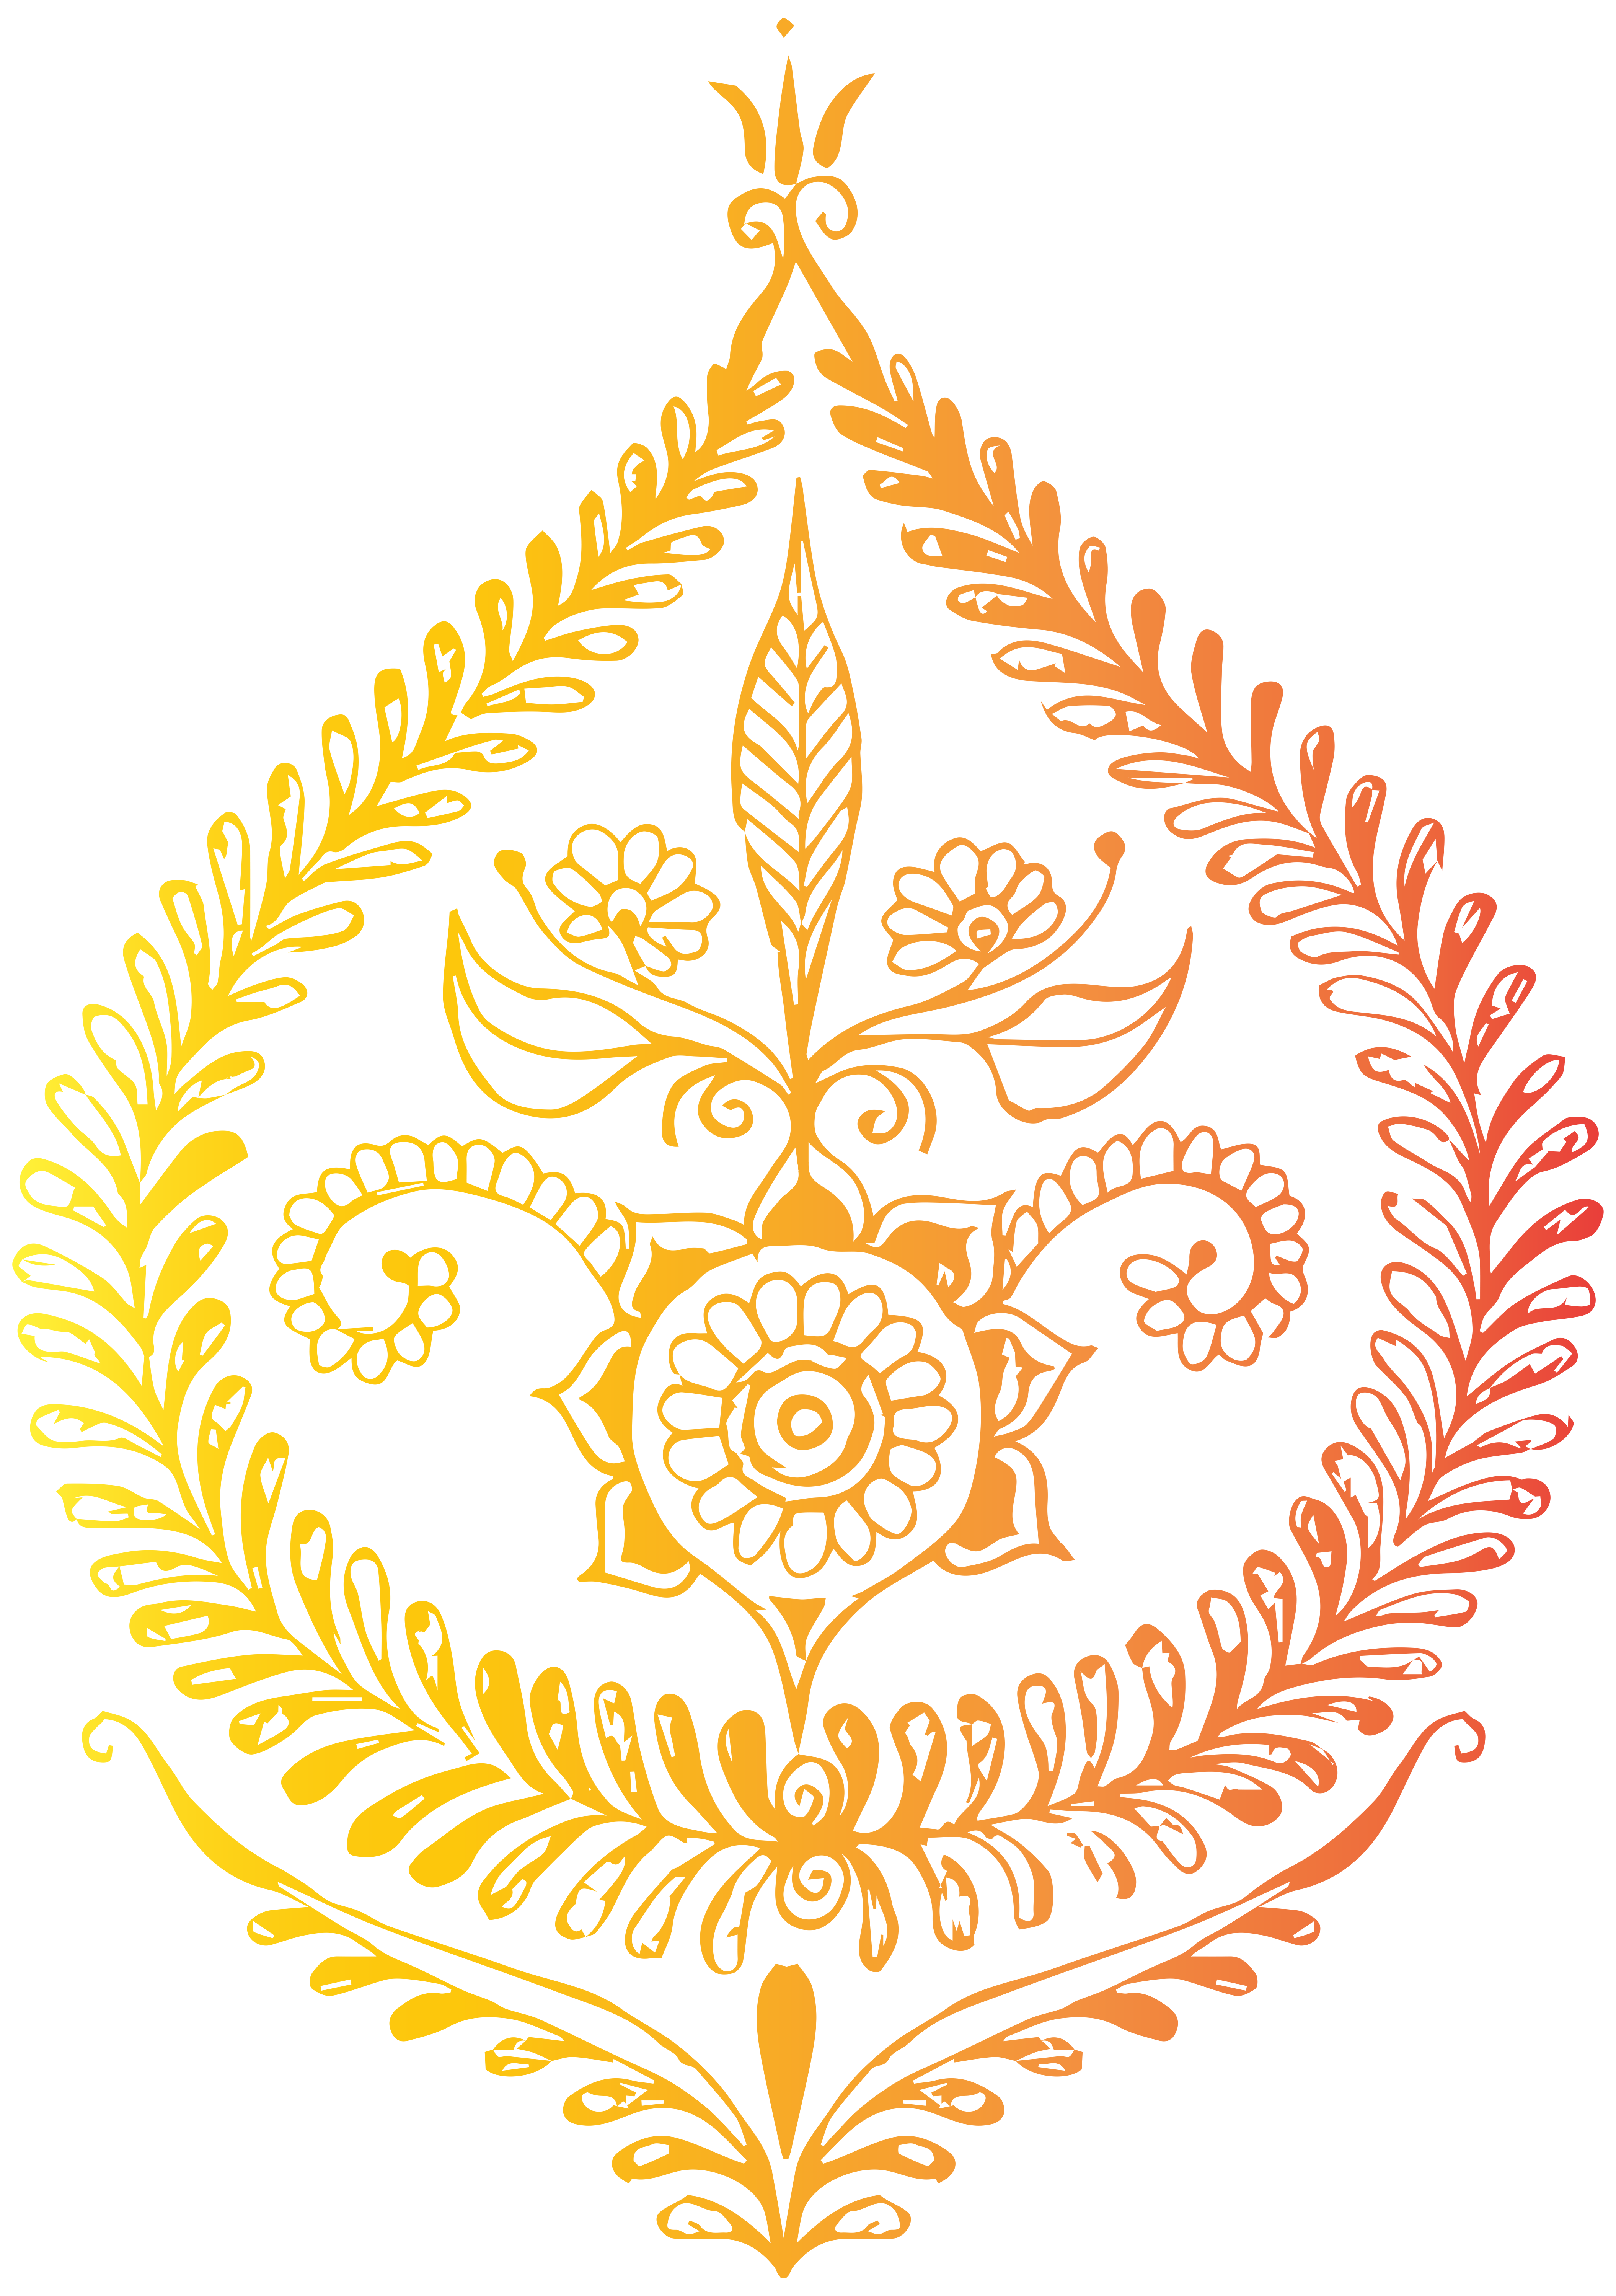 India Decoration Free PNG Clip Art Image.